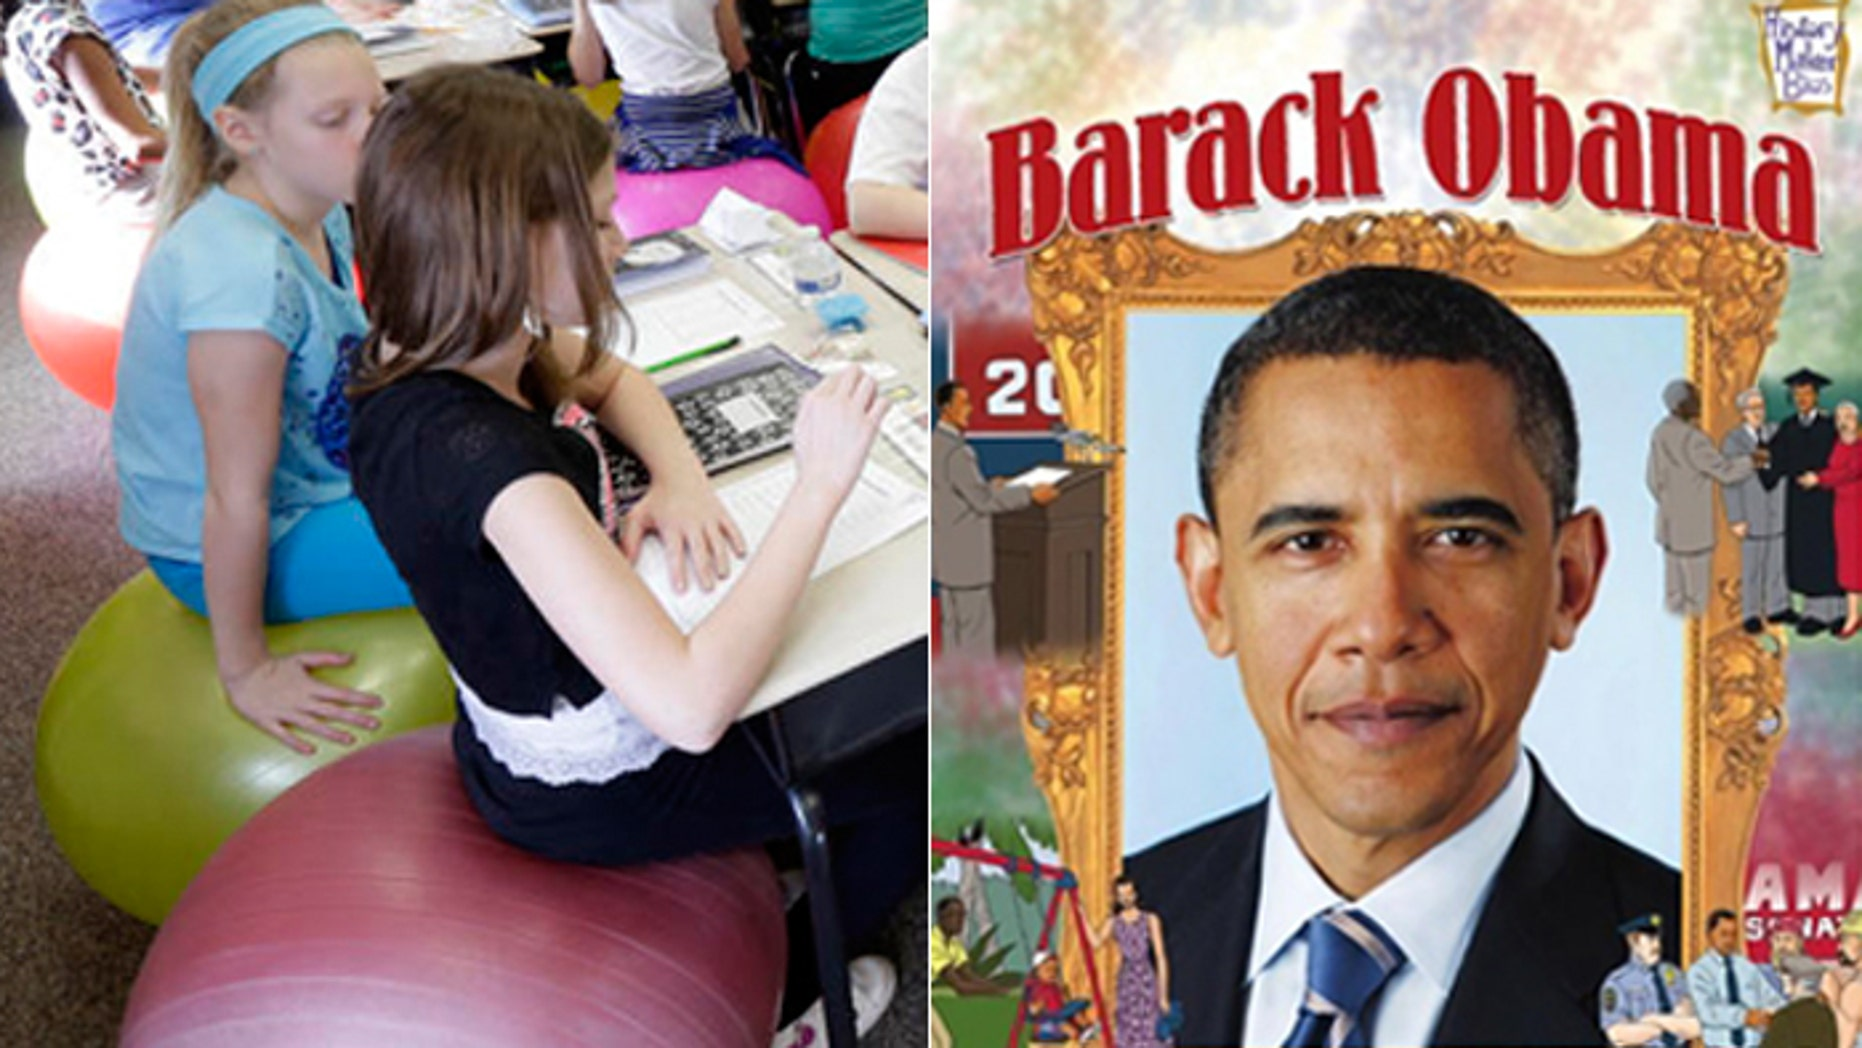 Parents and critics say a biography of President Obama being studied by children as young as fourth grade includes topics they don't need to read about.